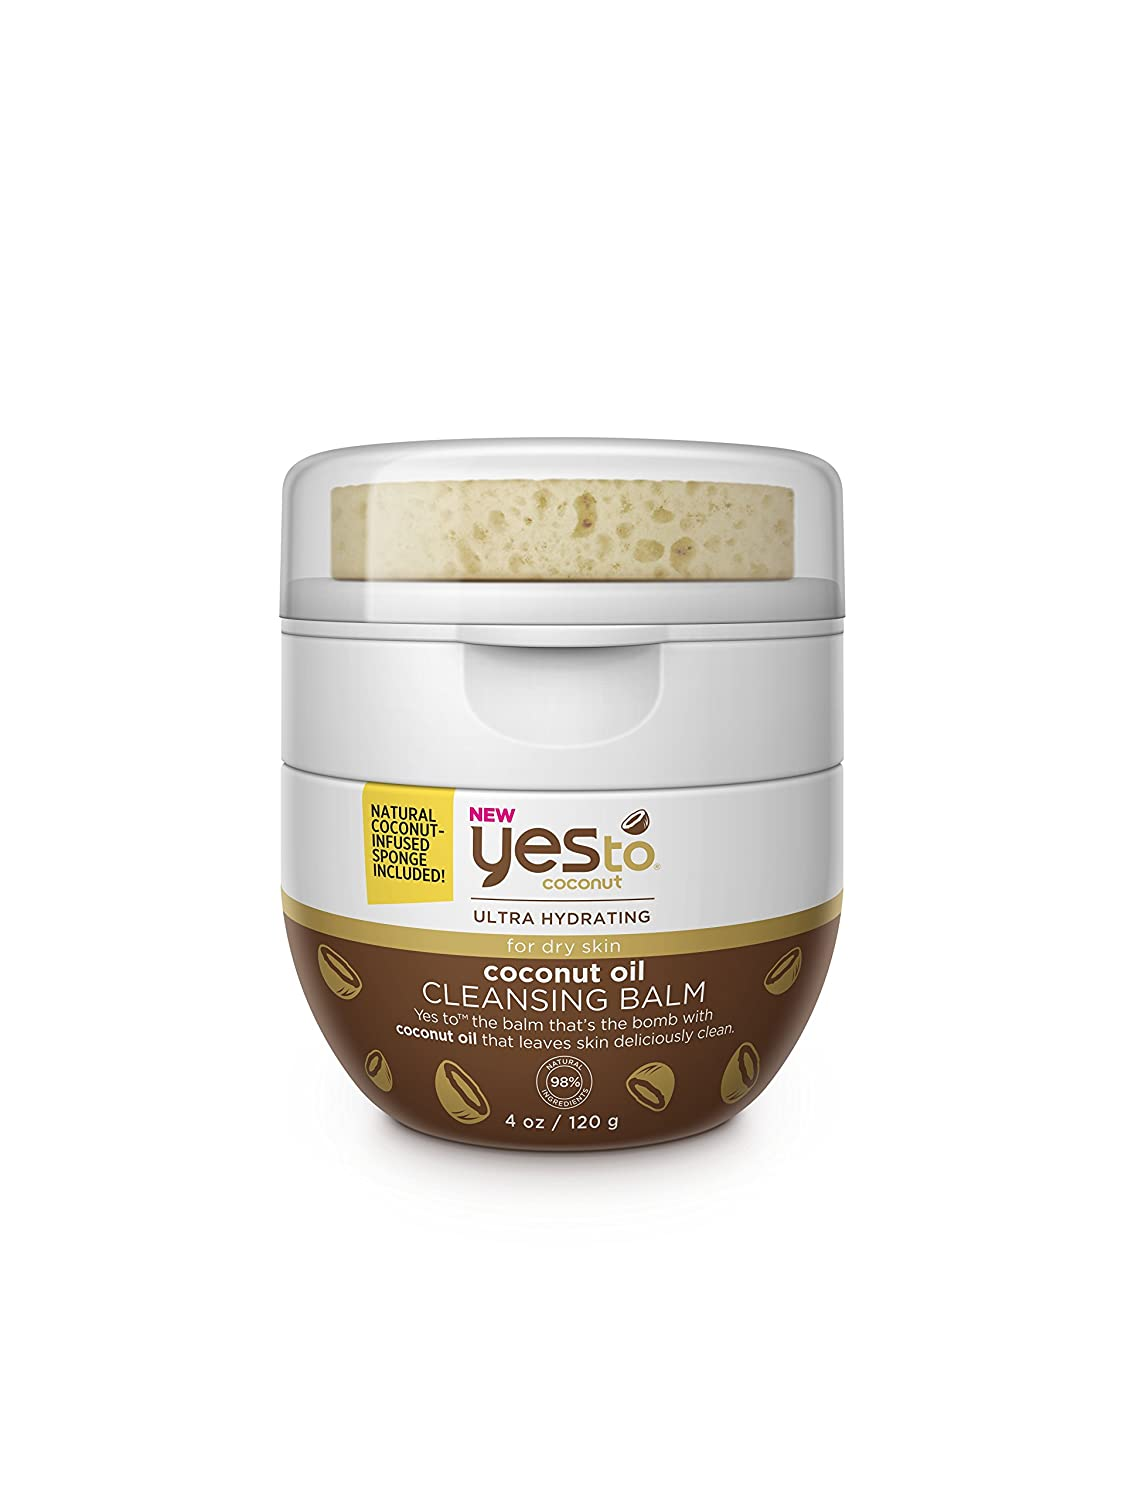 Yes to Coconut Cleansing Balm 1022792